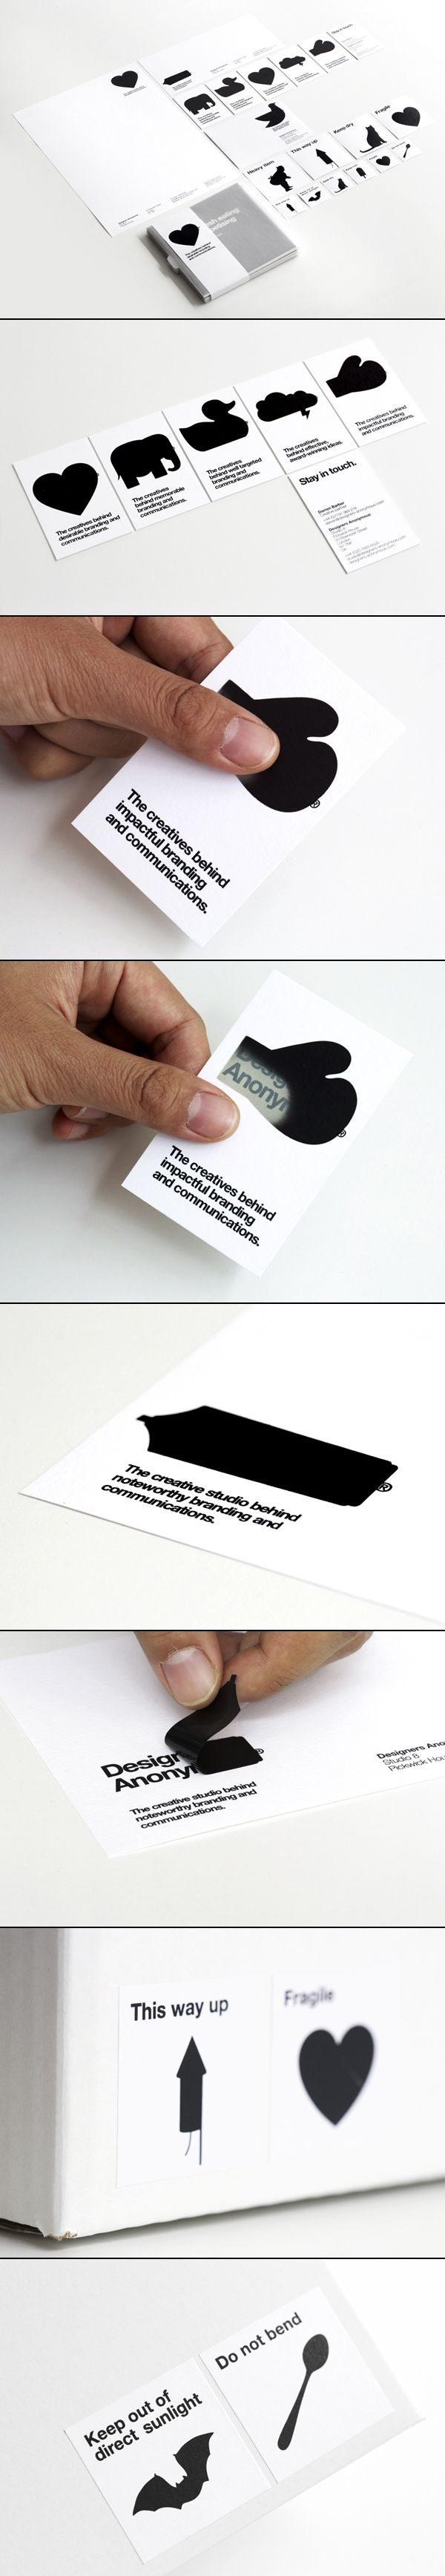 Designers Anonymous #branding #identity #design ...clever ideas and word/image associations. Bit too tongue-in-cheek for us maybe!